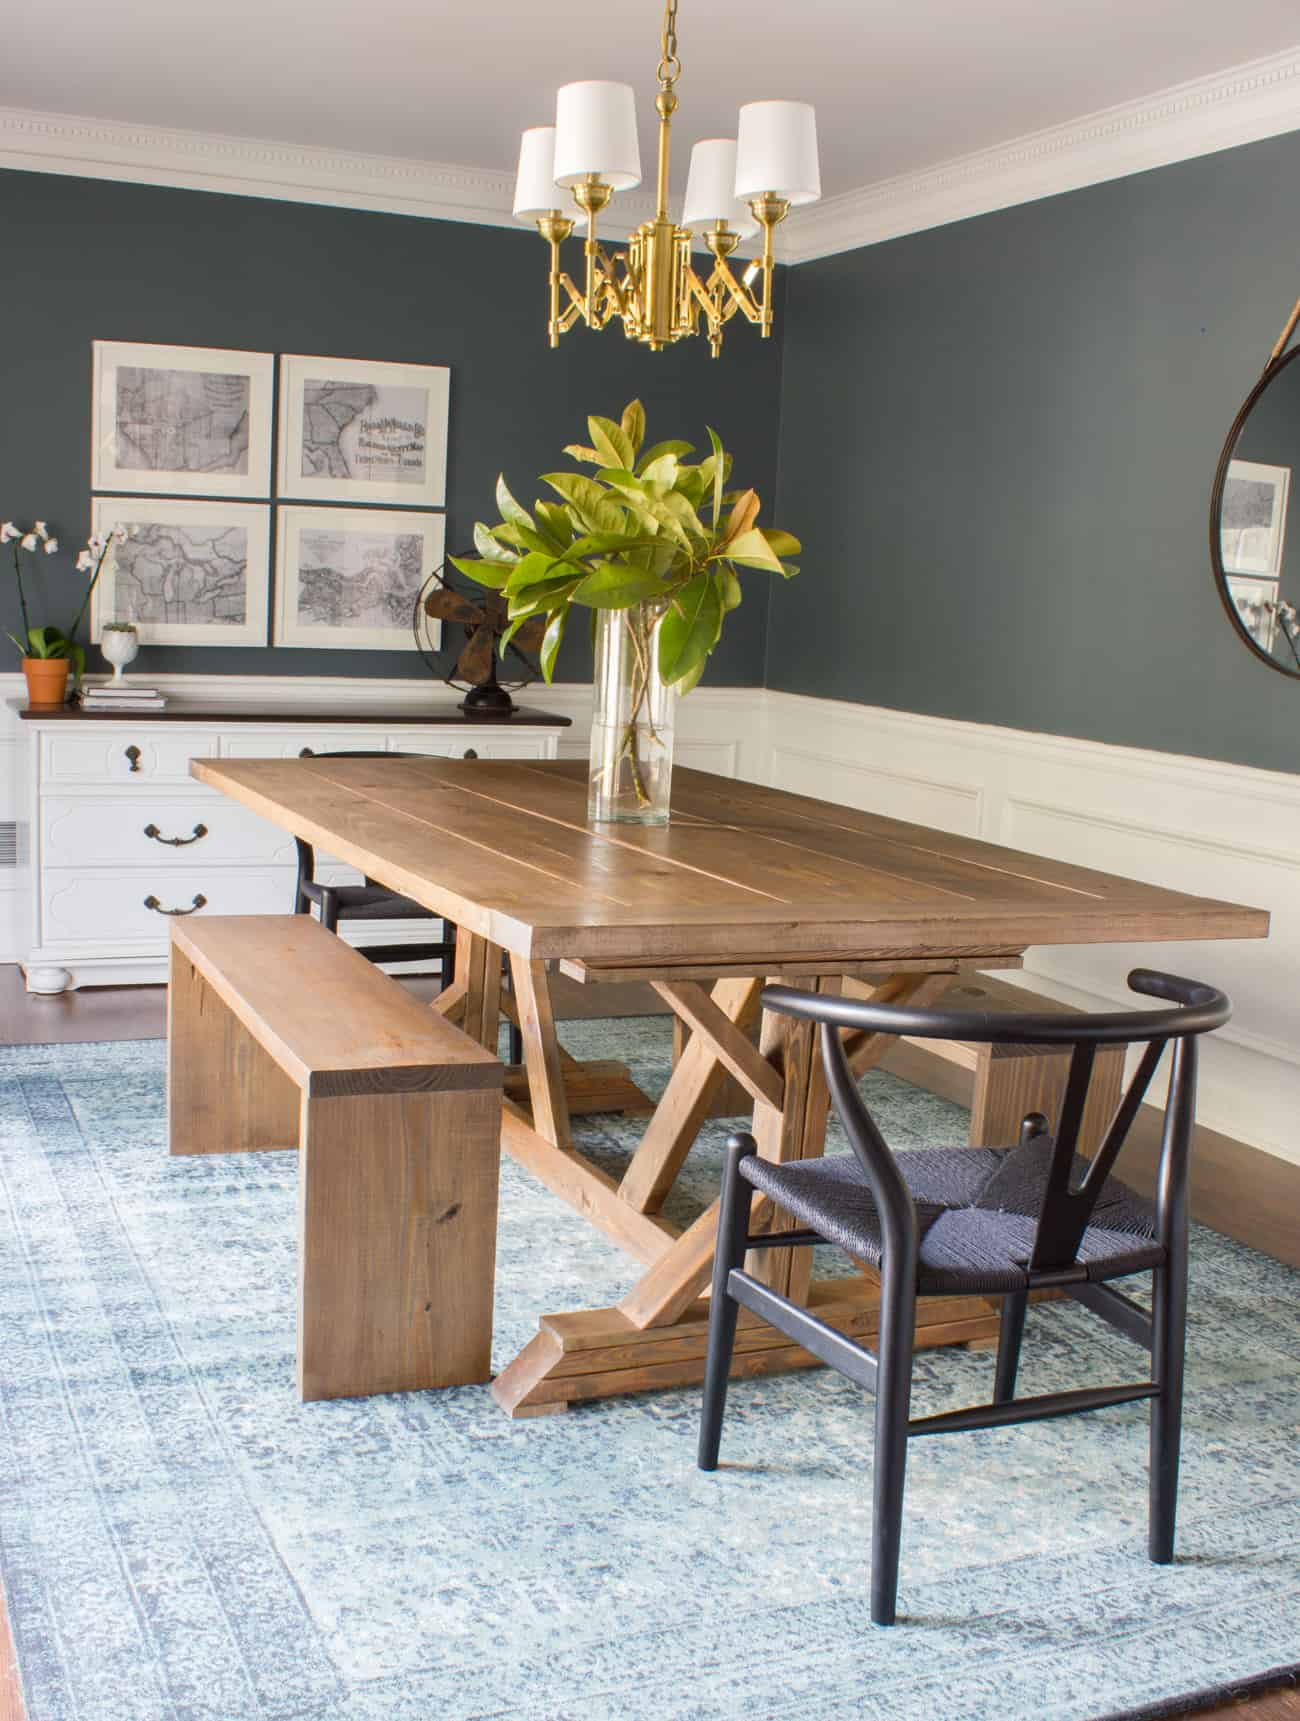 26+ Small Dining Room Decor Ideas 2020 Pictures